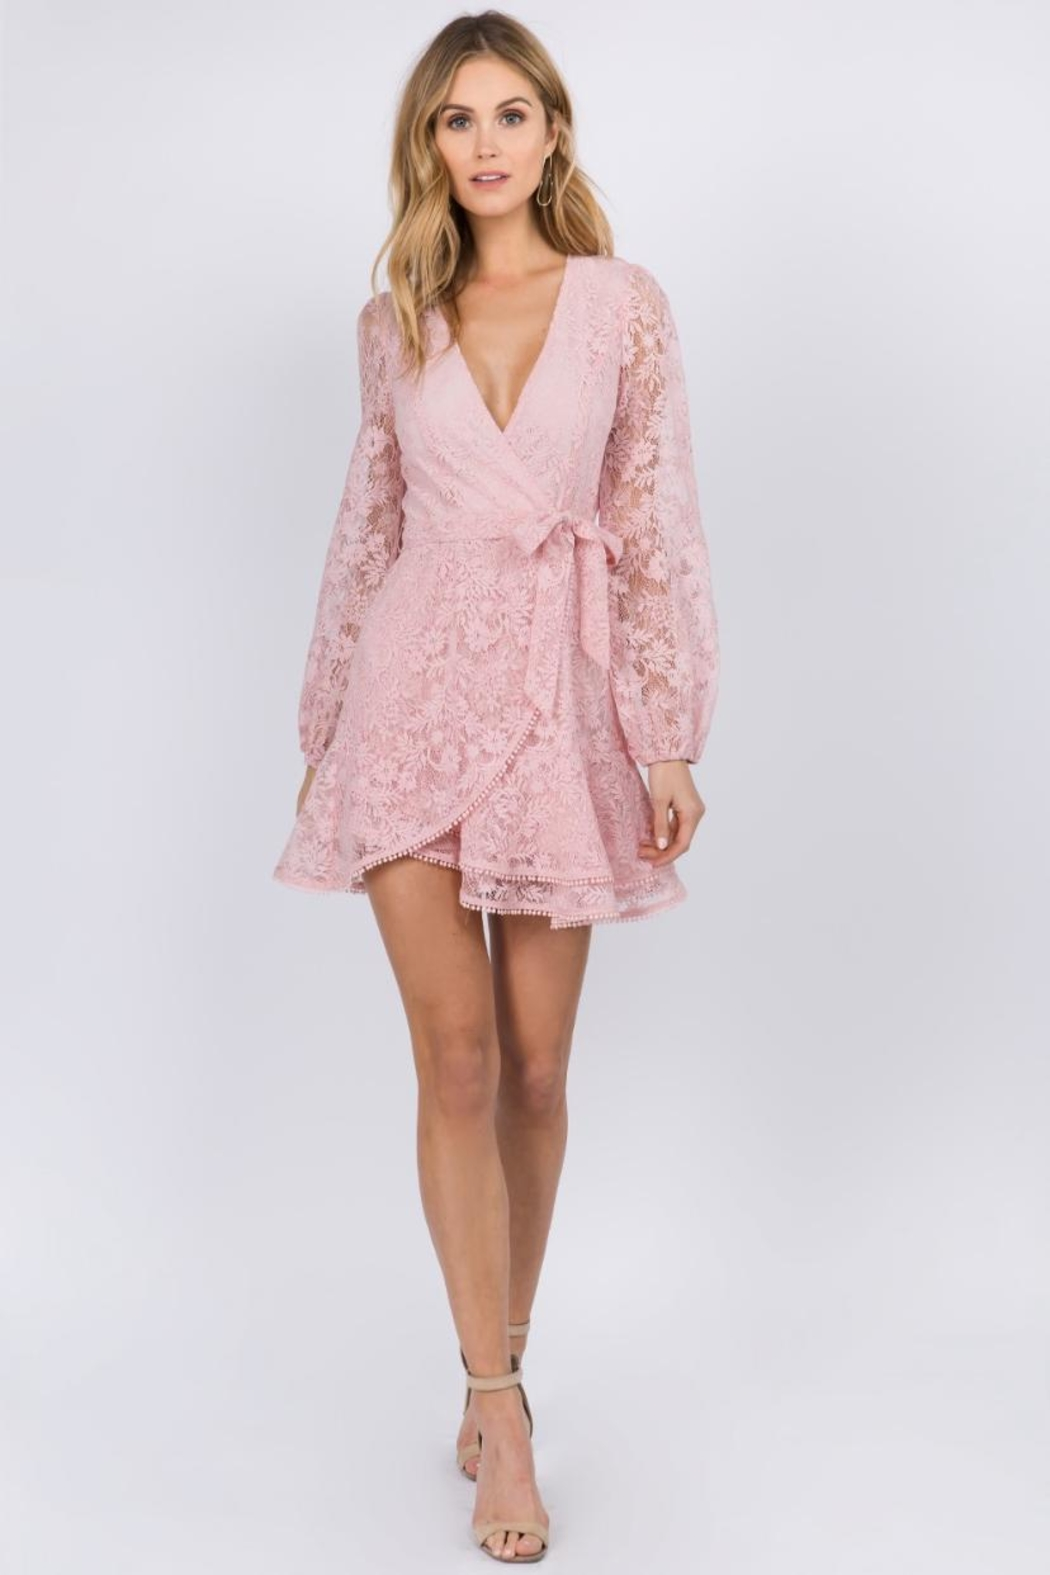 FANCO Pink Lace Dress - Main Image